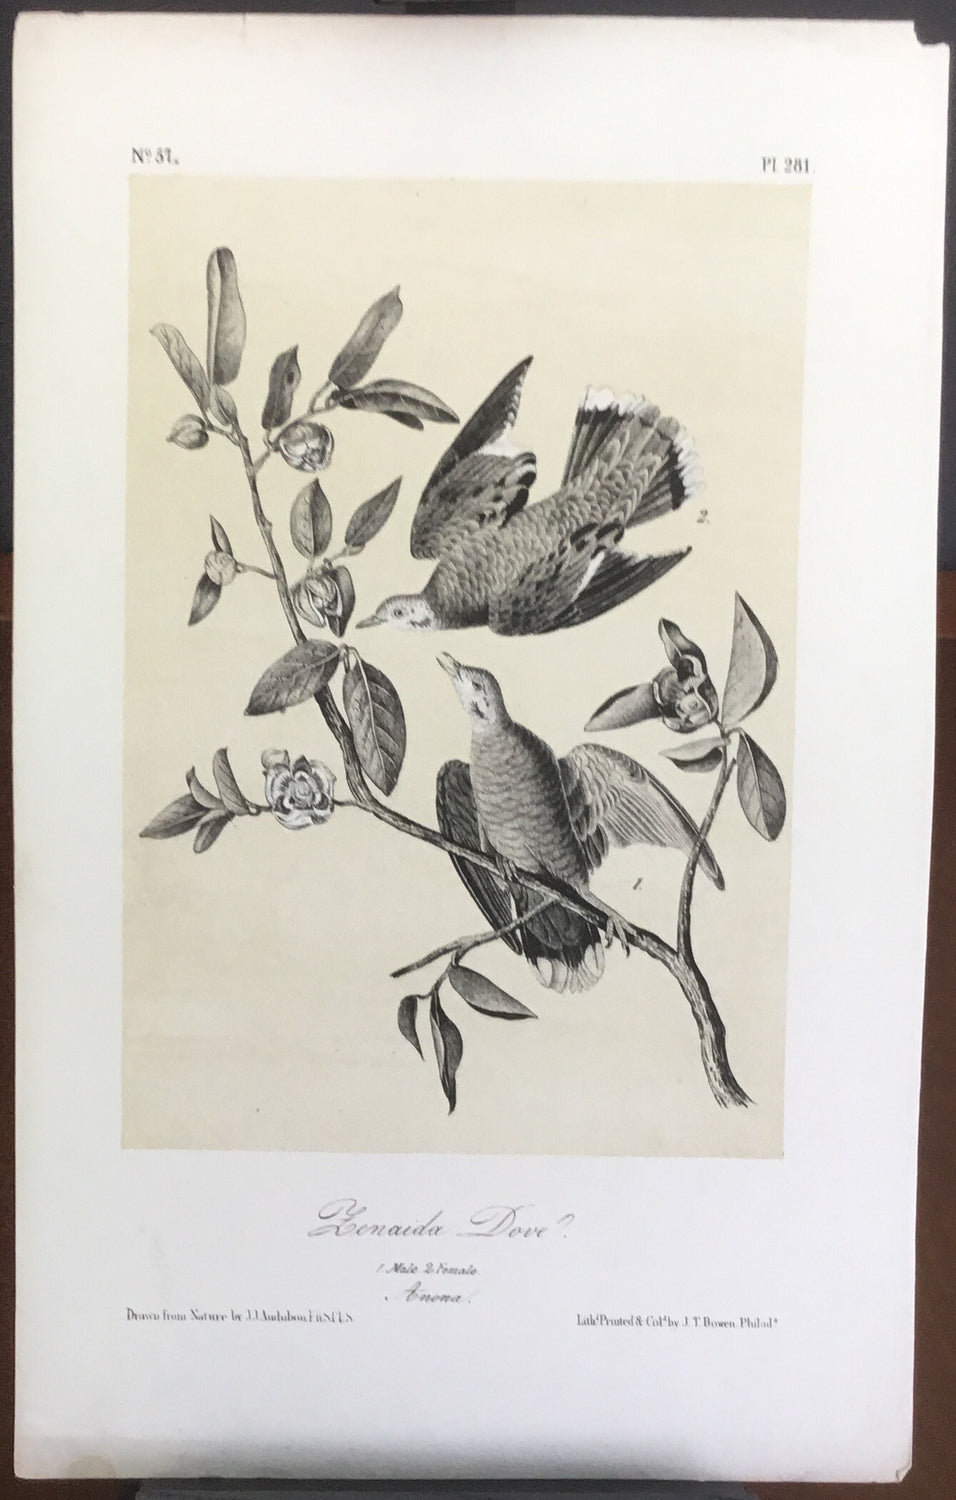 Audubon Octavo Zenaida Dove, plate 281, uncolored test sheet, 7 x 11